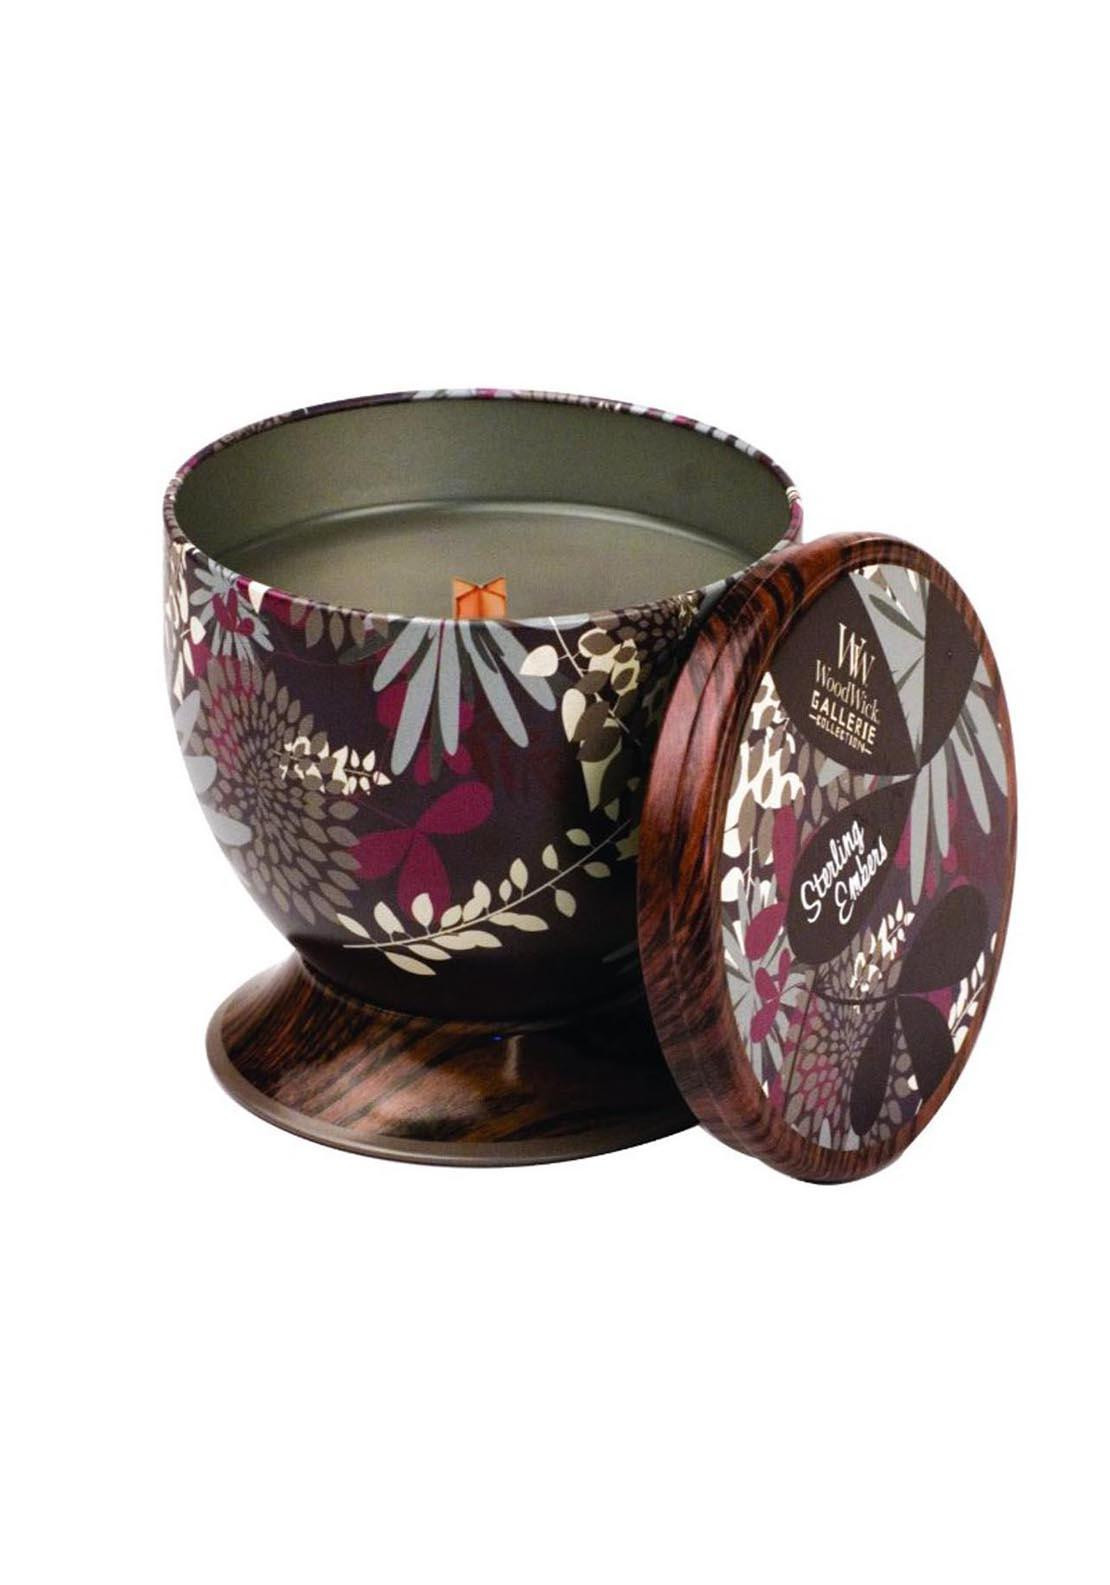 Woodwick Gallerie Collection, Scented Candle, Sterling Embers